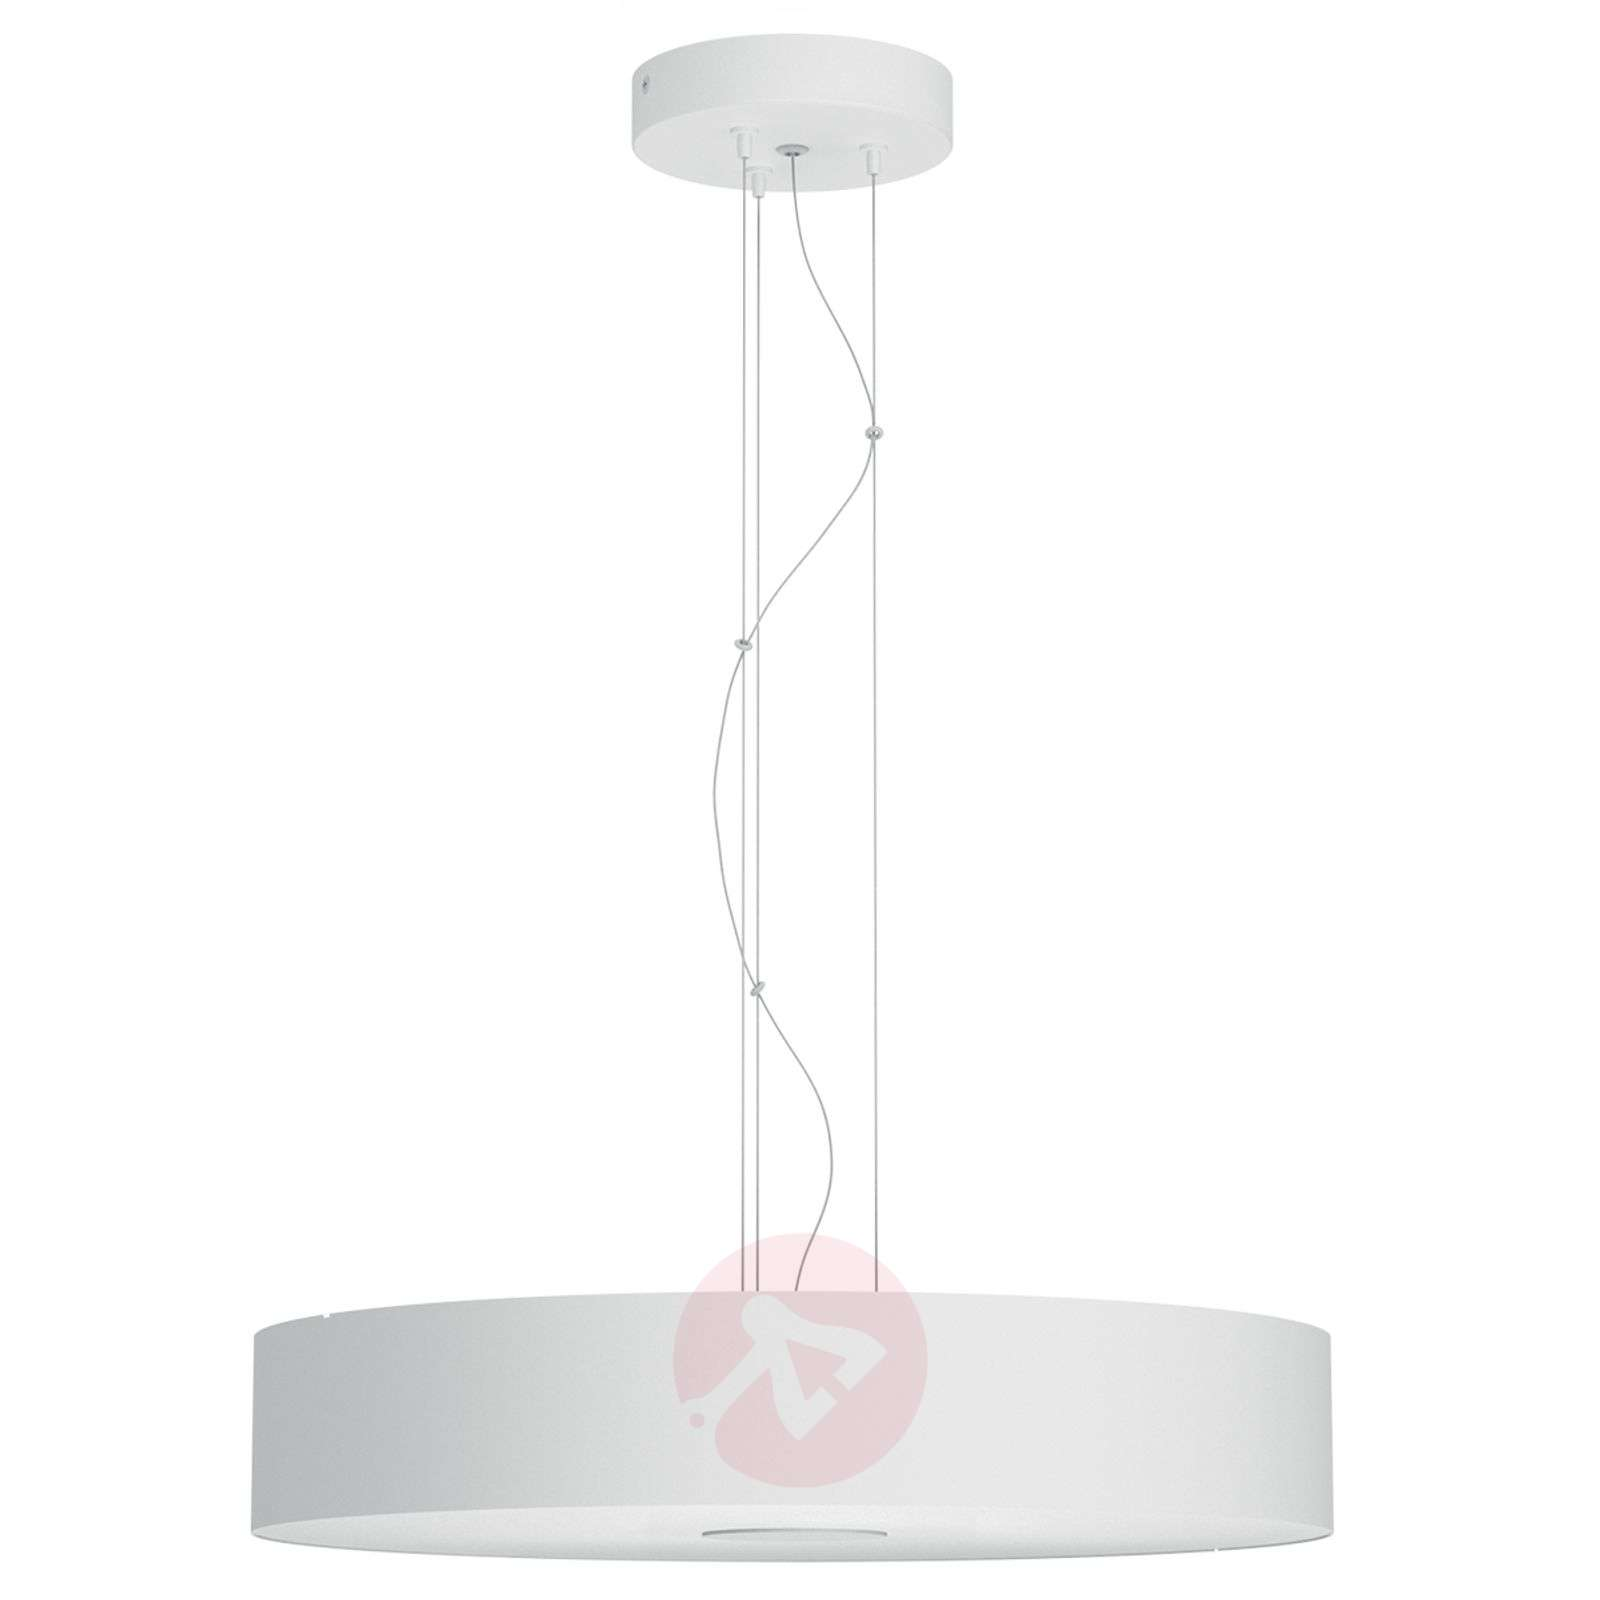 Suspension LED innovante Philips Hue Fair-7531875-01